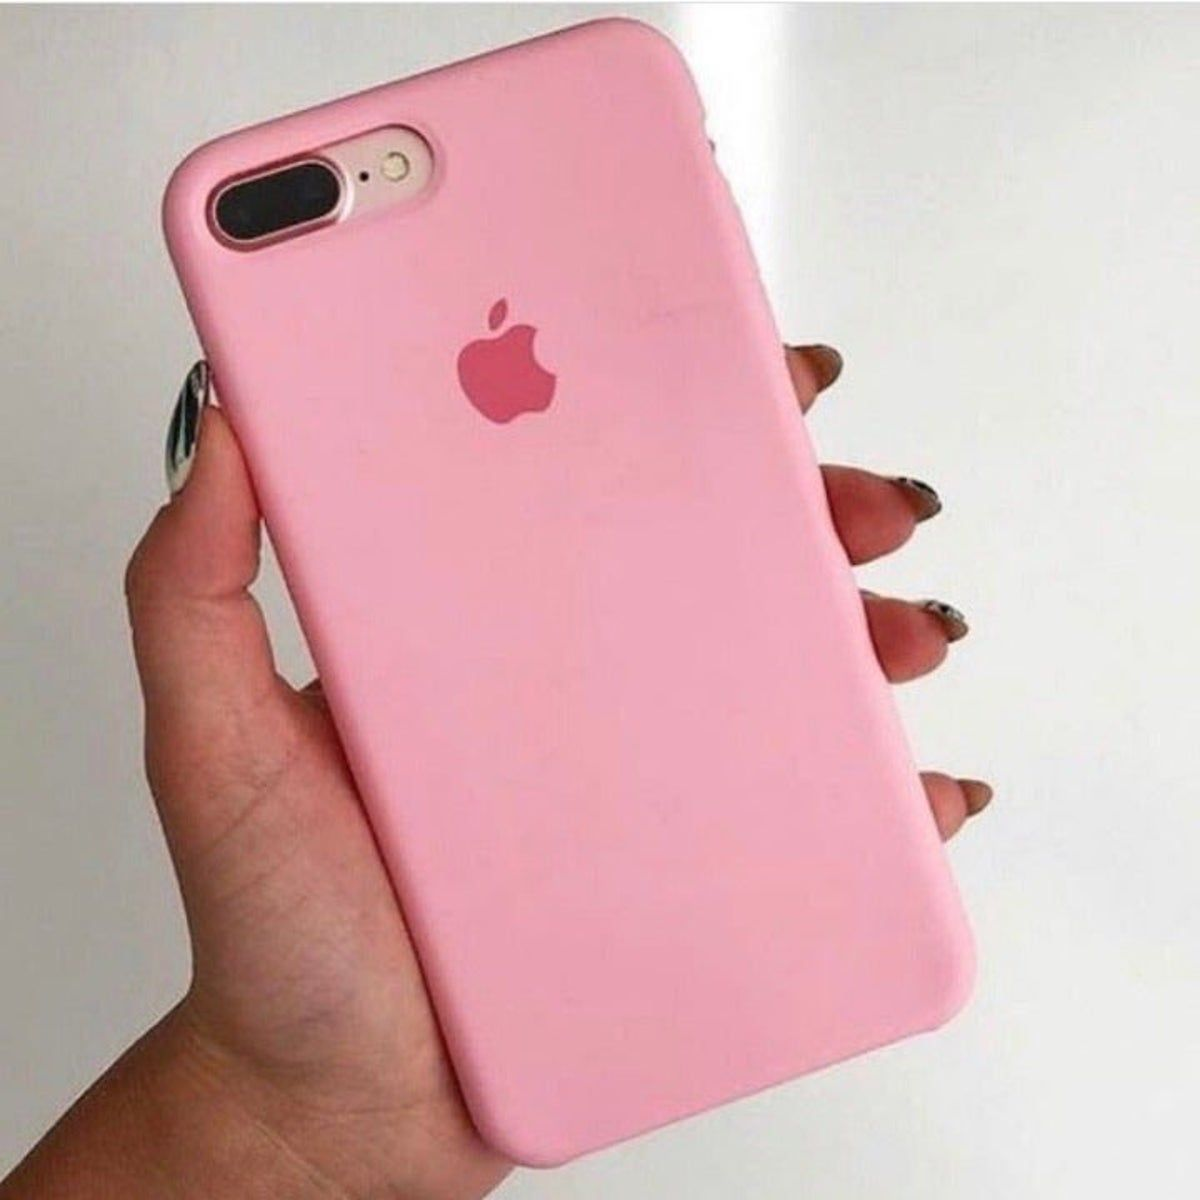 Iphone 7 8 Plus Bright Pink Case Cover Apple Phone Case Pink Iphone 7 Case Silicone Iphone Cases